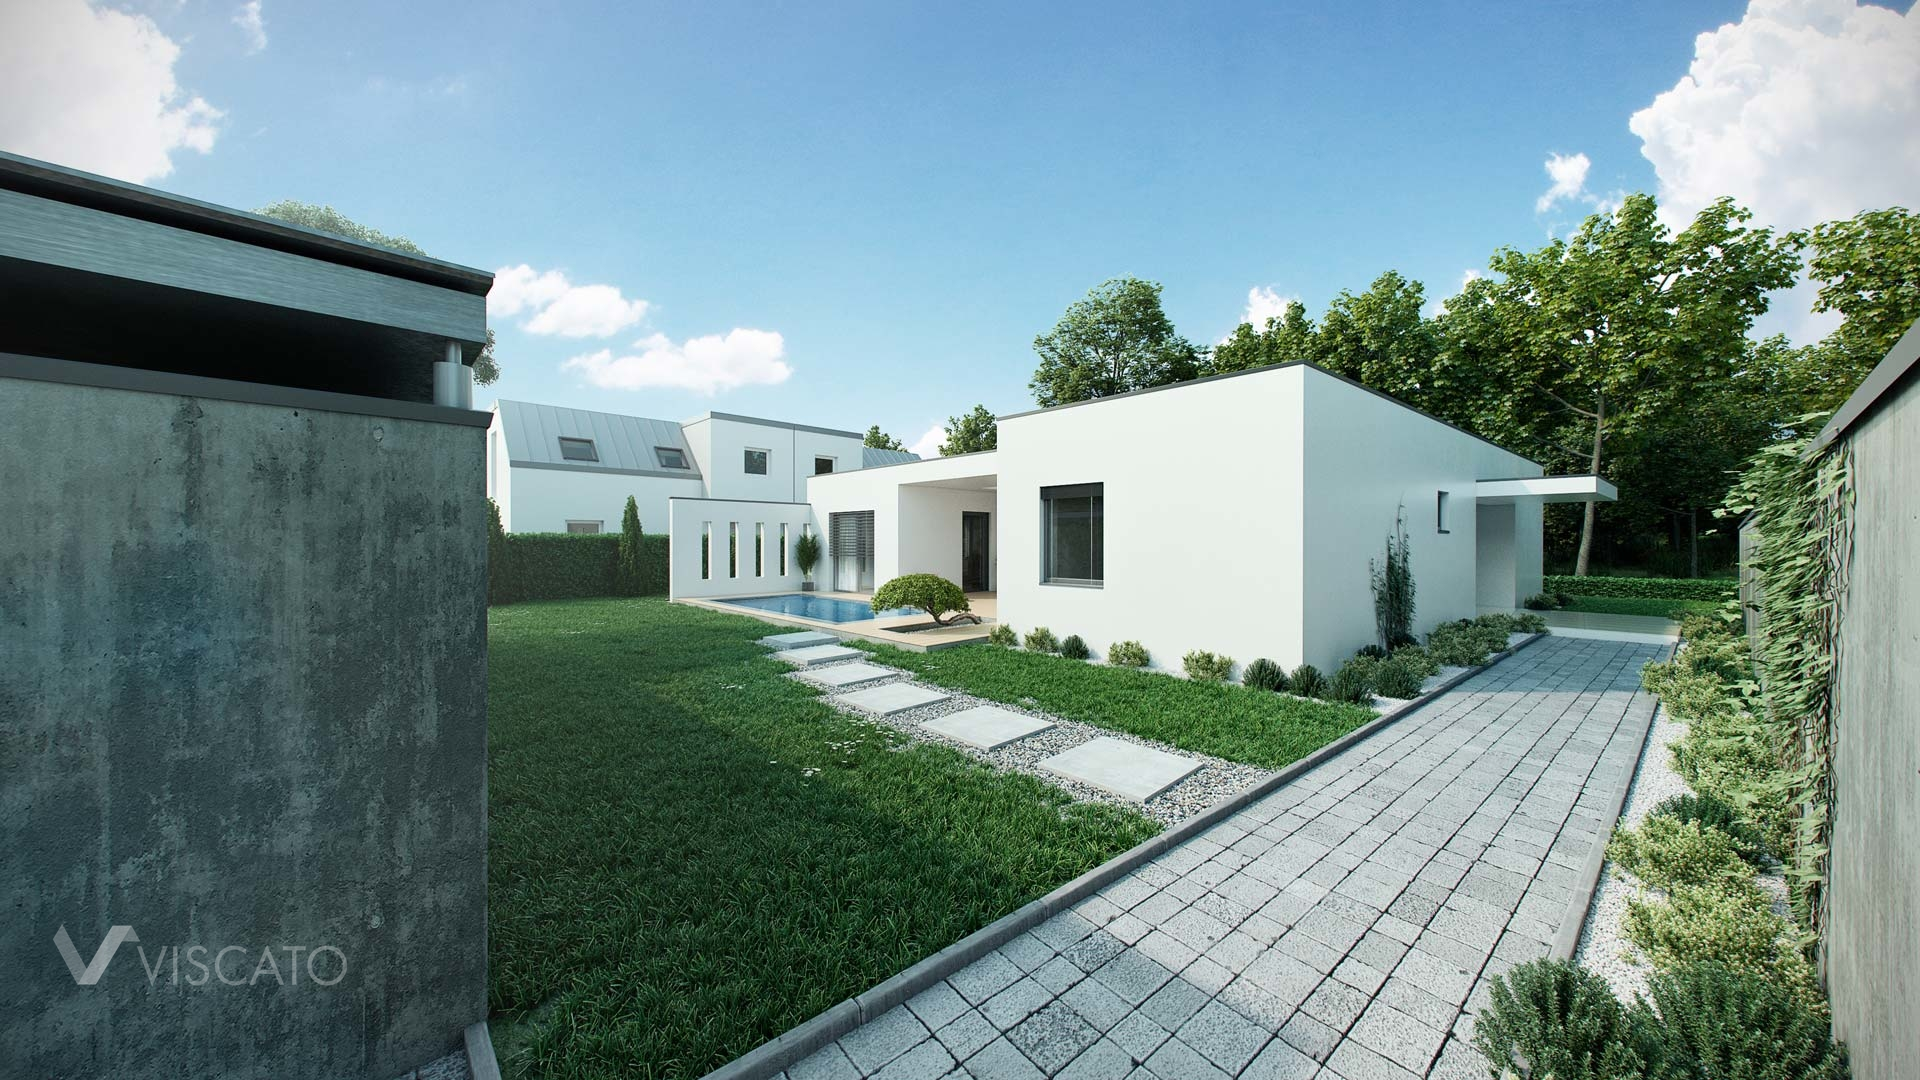 3d visualization of a backyard and white house Viscato